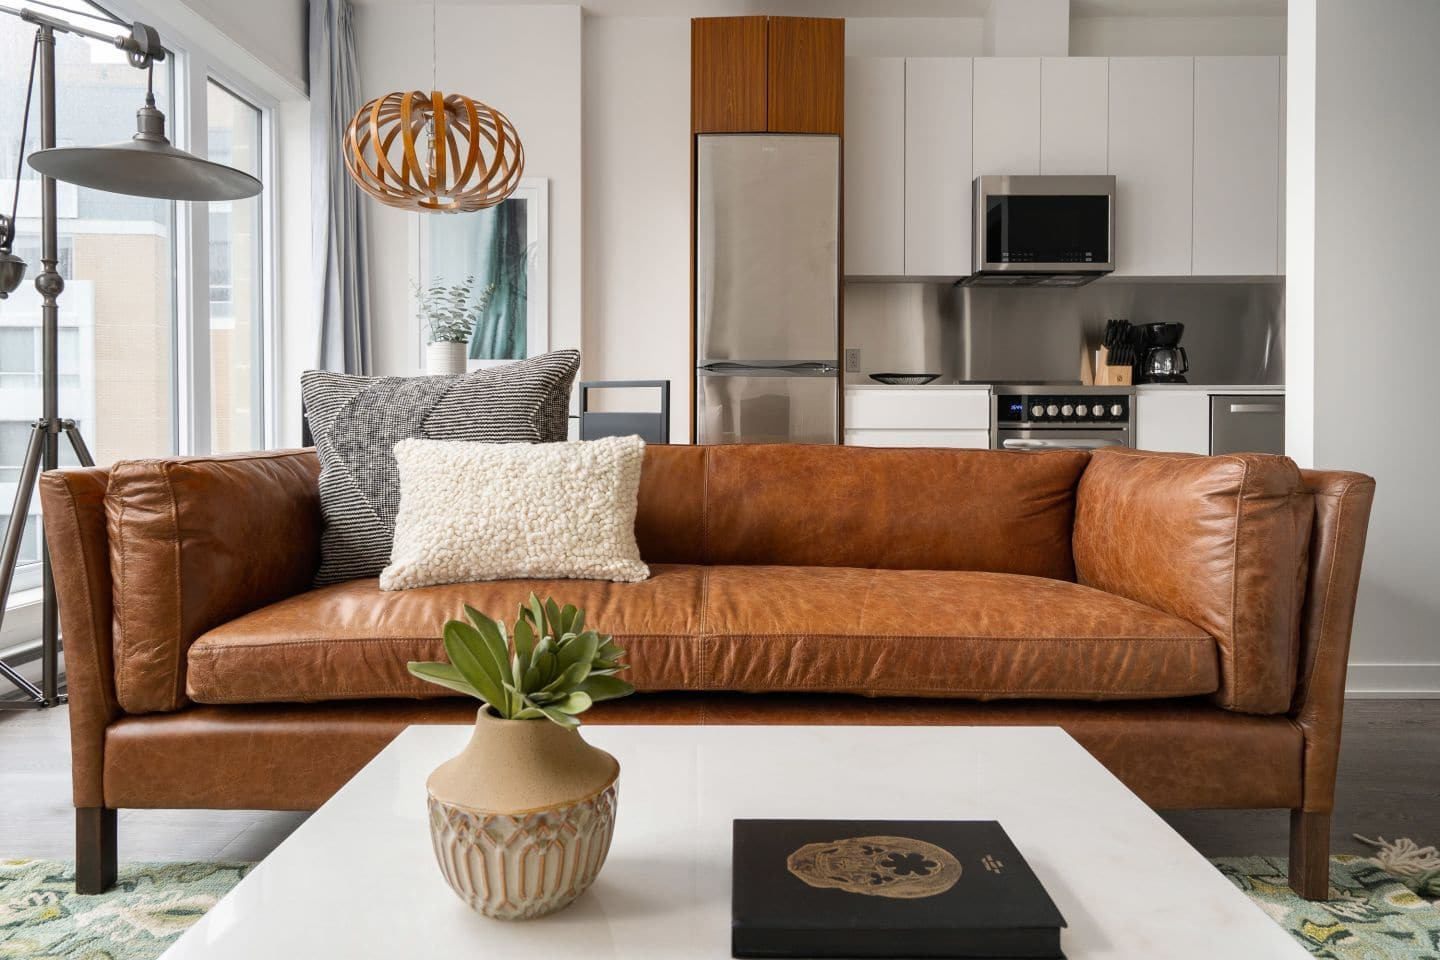 Image of: Finley Mid Century Modern Leather Sofa Midcentury Leather Couch Edloe Finch Furniture Co